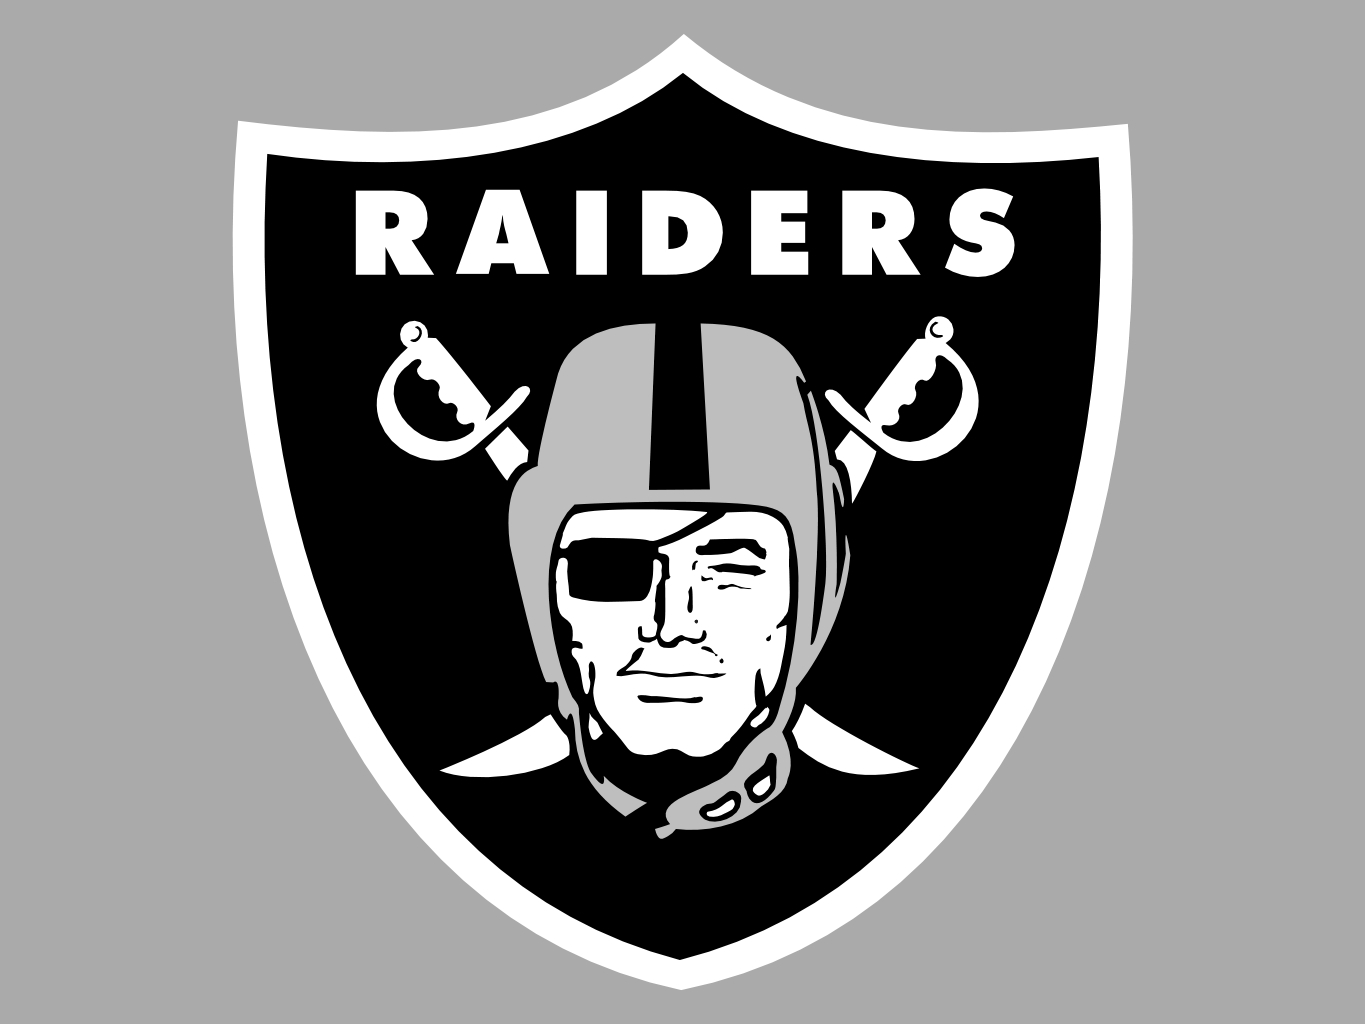 Free Raiders Wallpaper Screensavers